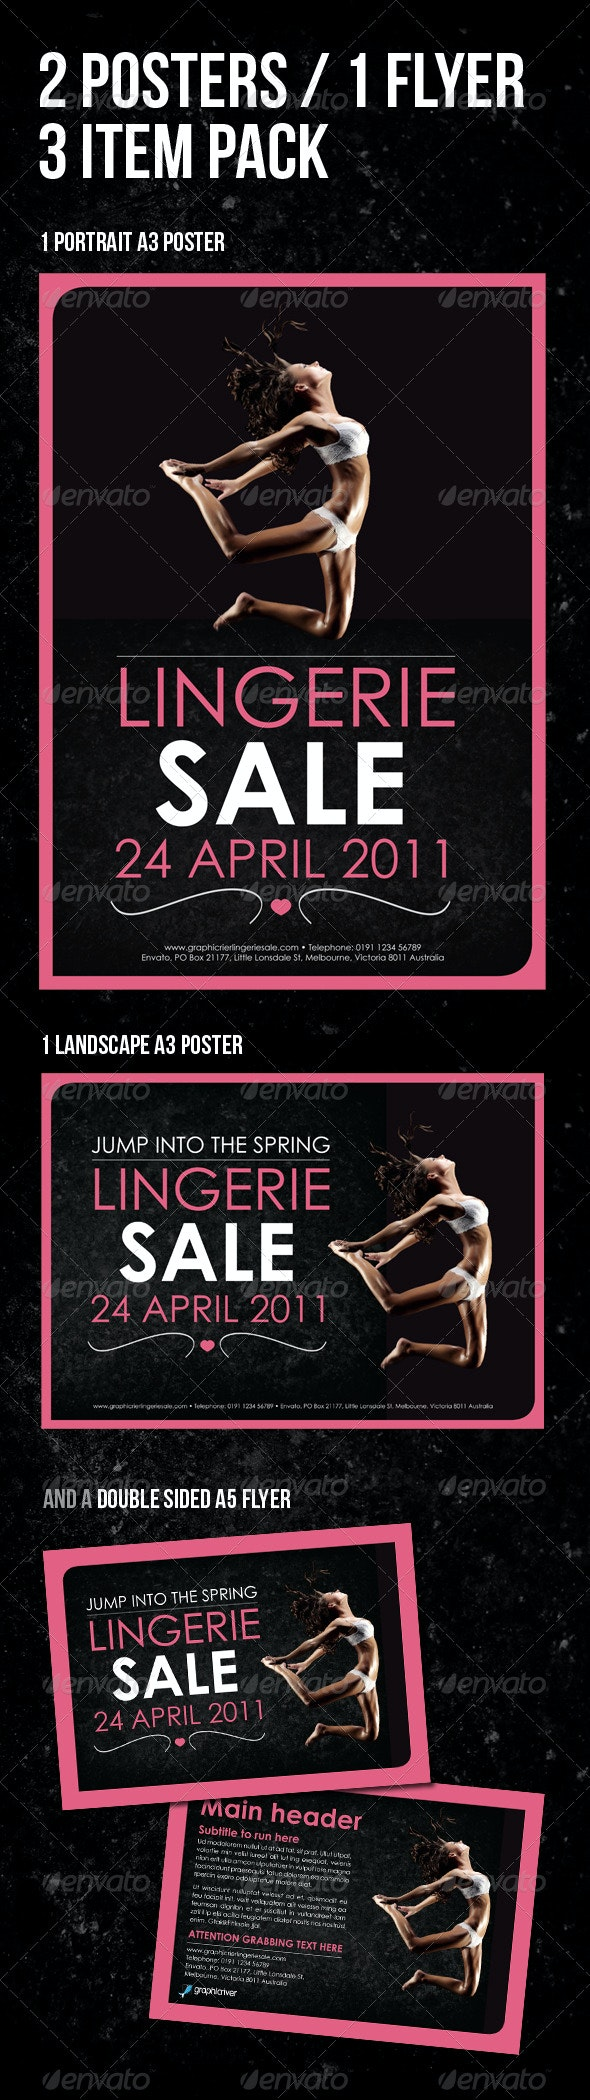 Lingerie A3 Poster / A5 Flyer Pack. 3 items - Commerce Flyers